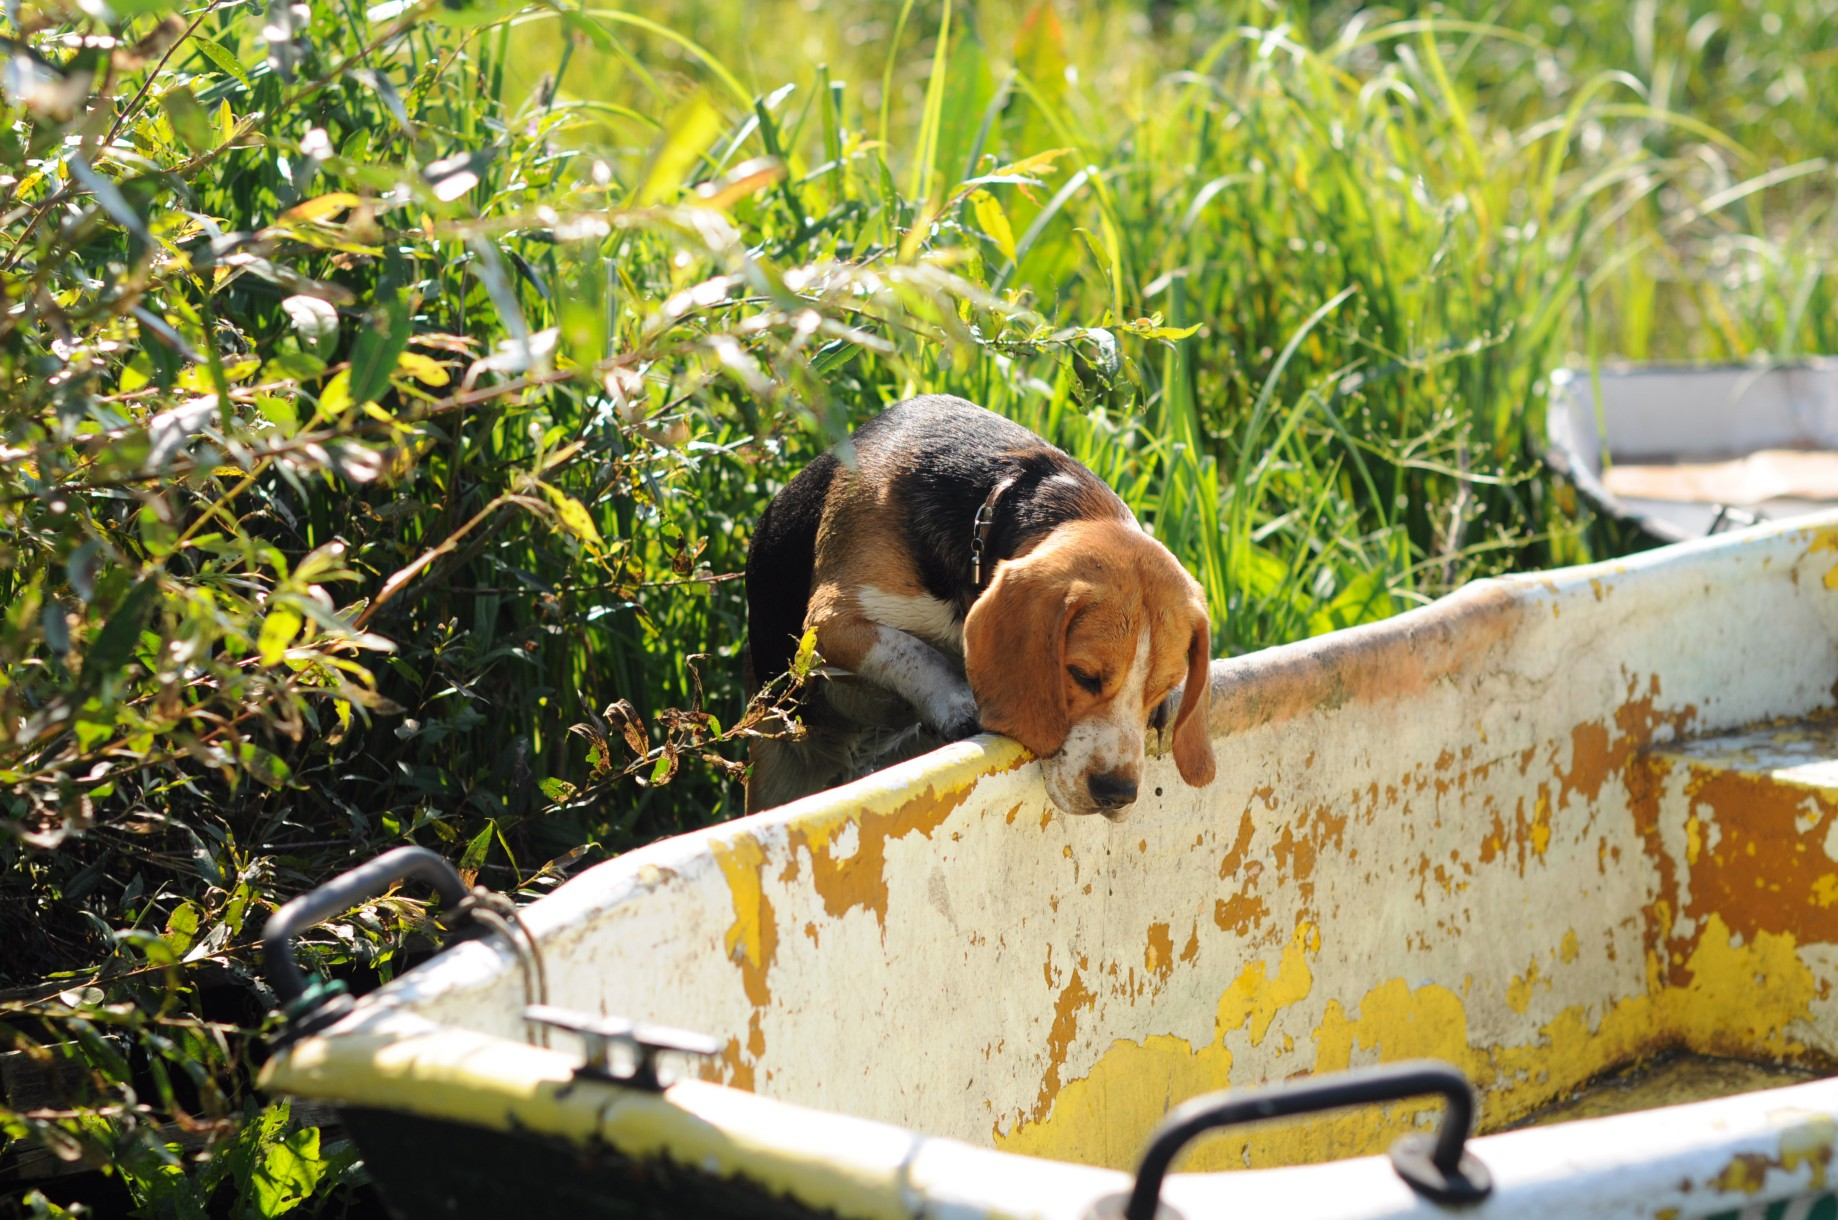 Beagles: Off-Leash Training or Not? - Richard Kitchen - Medium